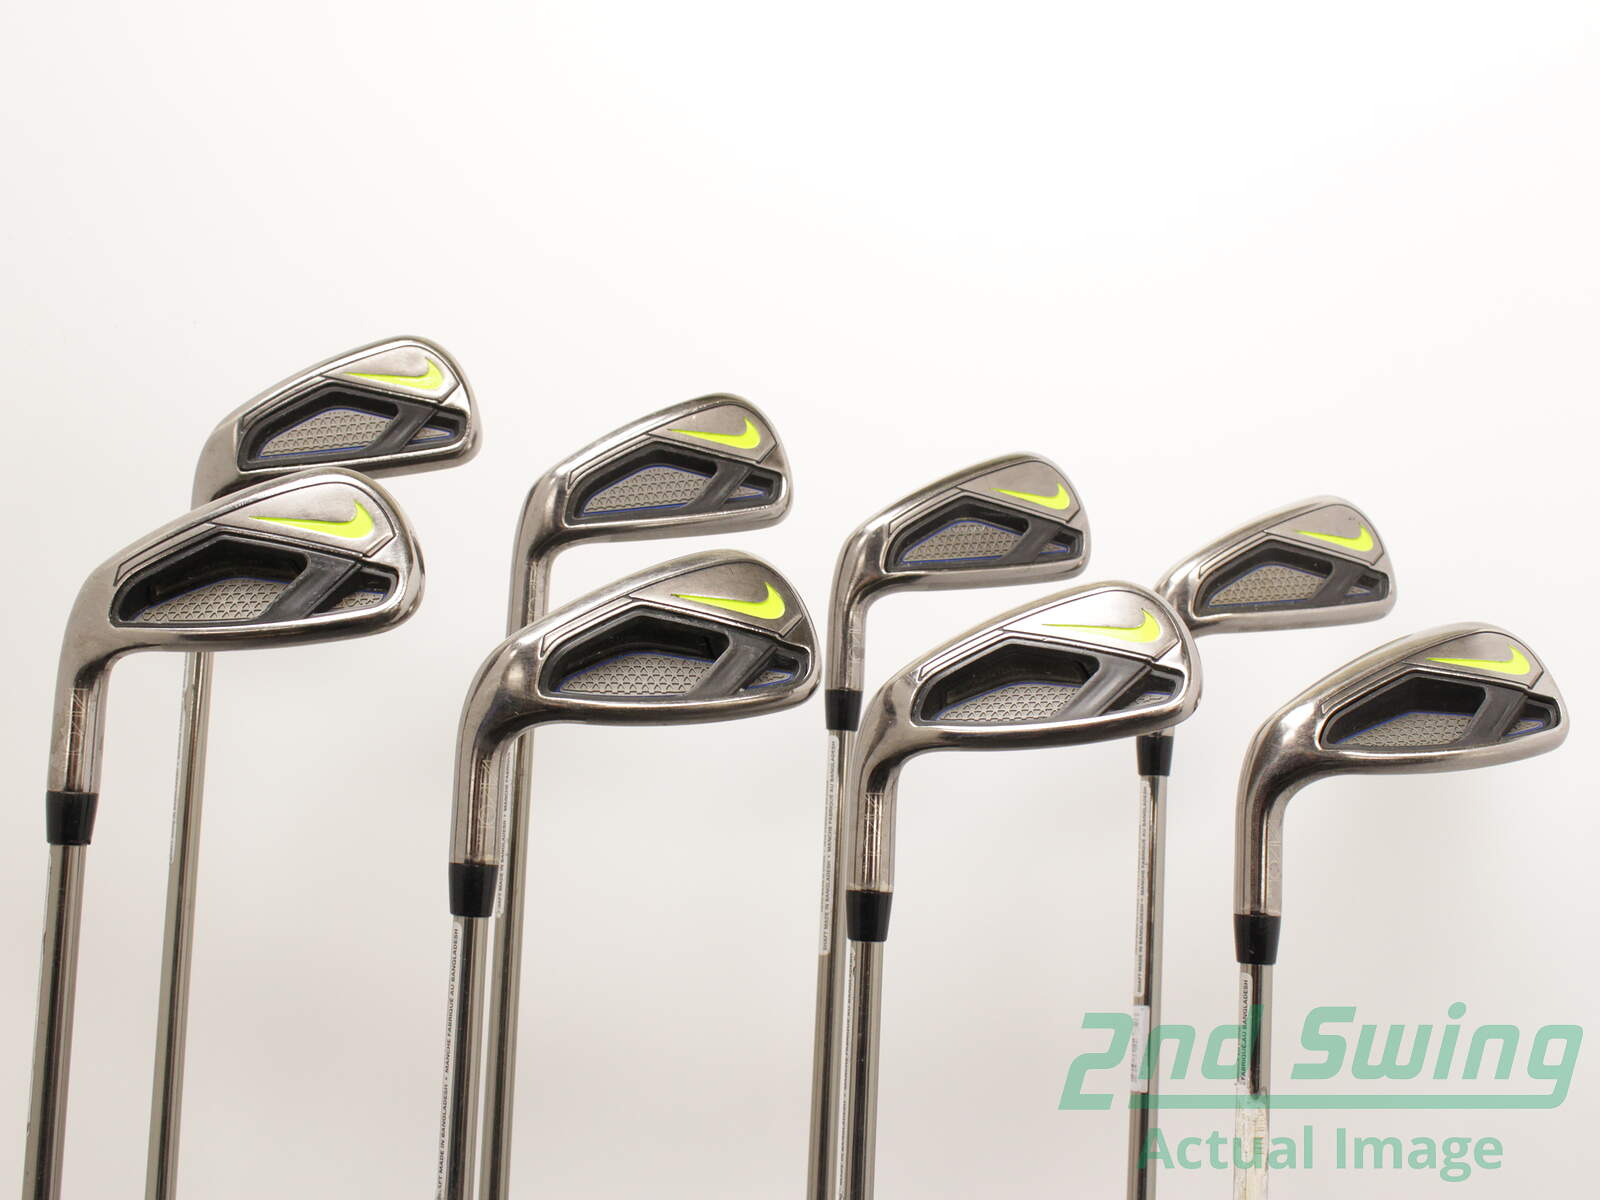 afa9678617e23 Nike Vapor Fly Iron Set 4-PW GW UST Mamiya Recoil 460 F2 Graphite Senior  Left Handed 38.5